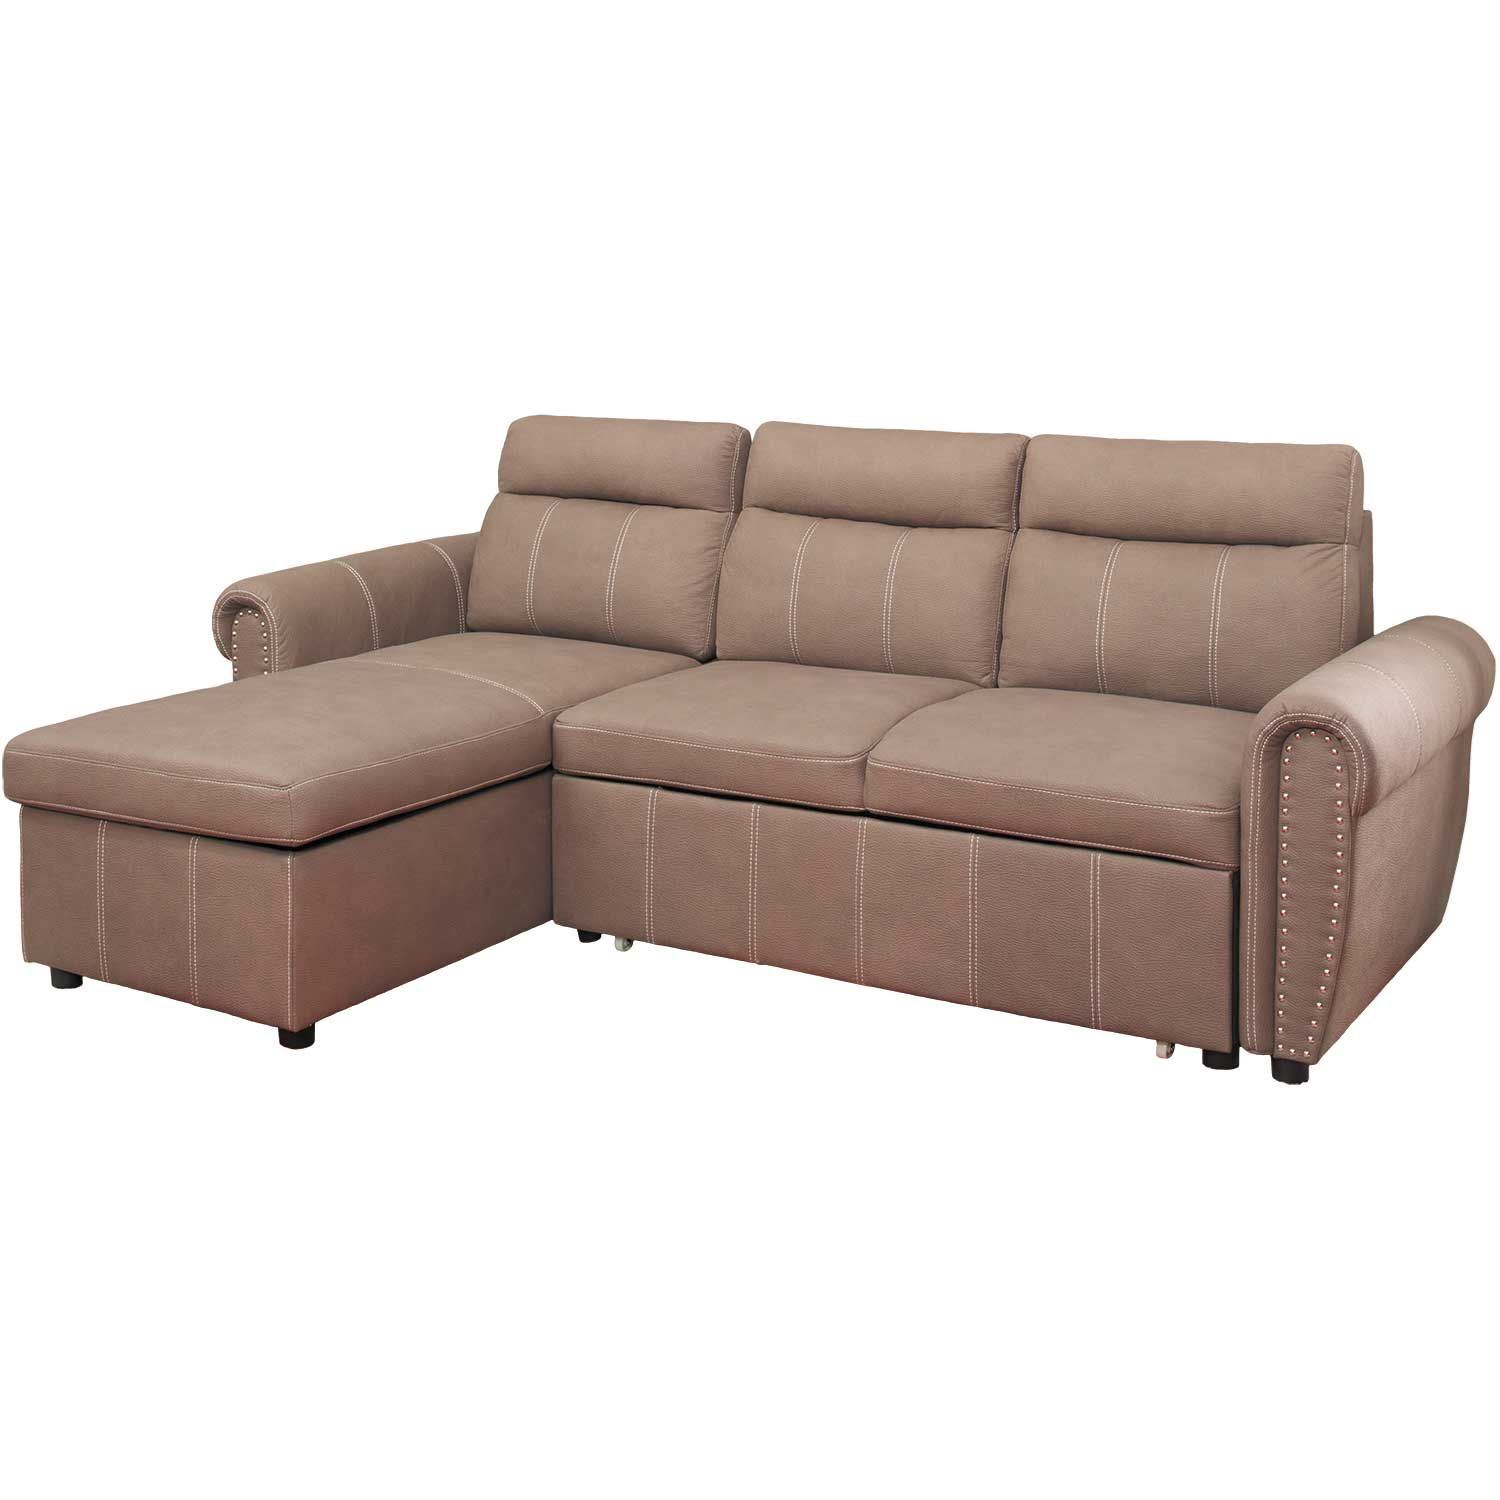 Farrel 2 Piece Sectional With Pull Out Bed 1a Far 2pc